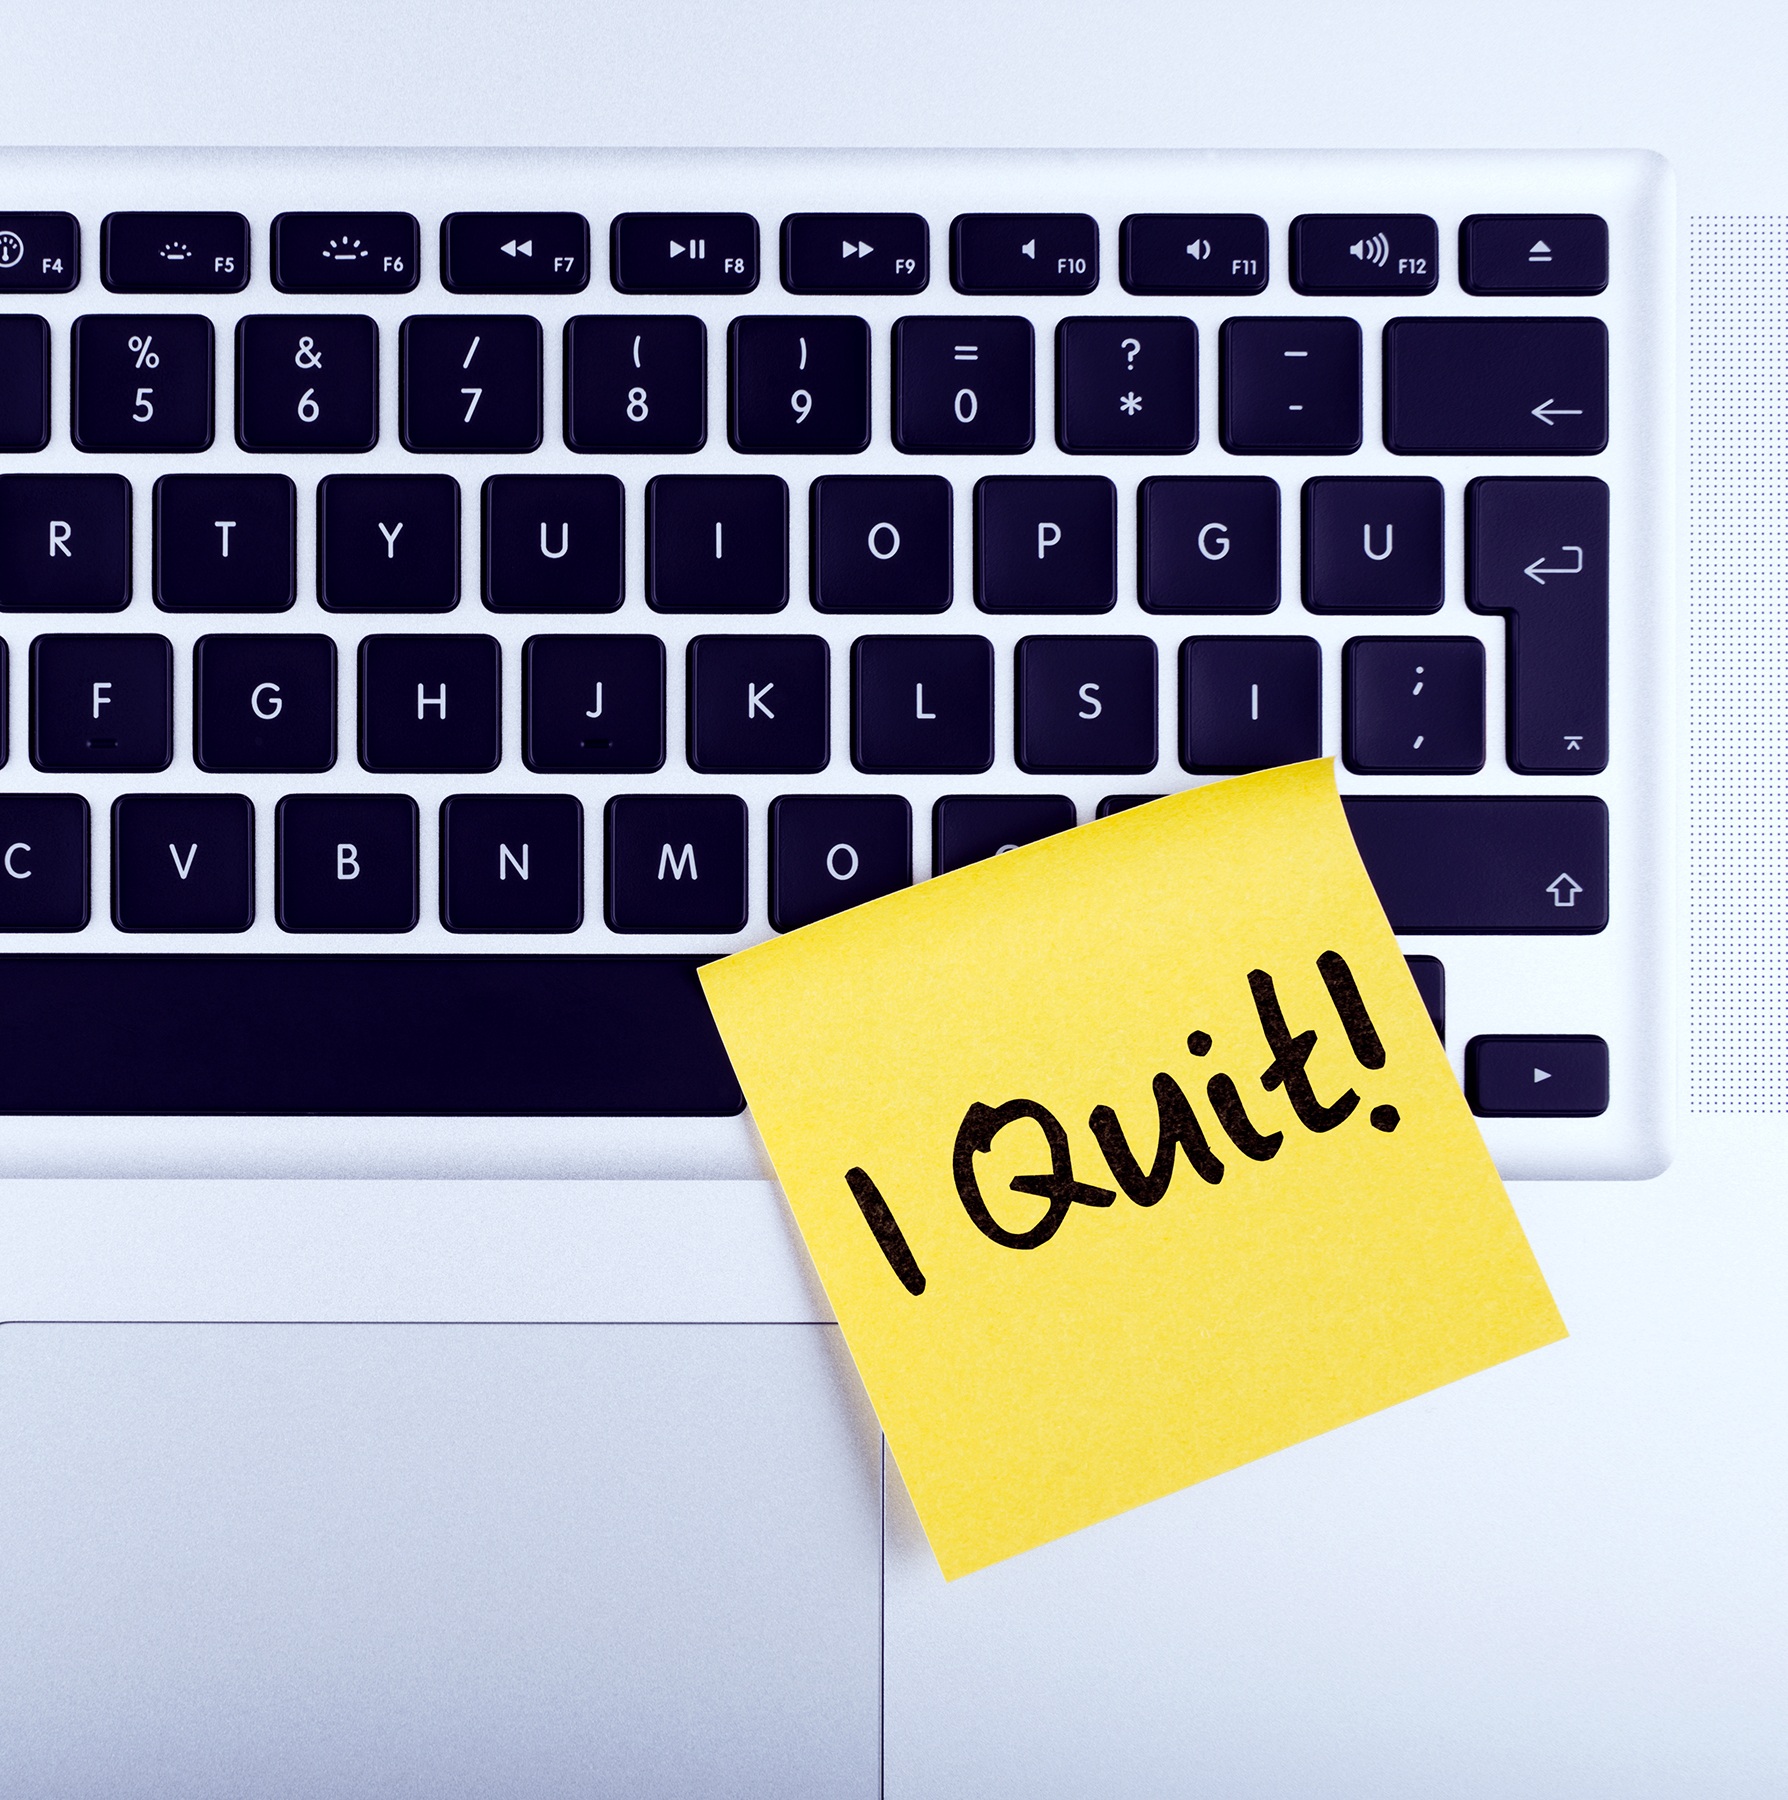 I quit post-it on keyboard